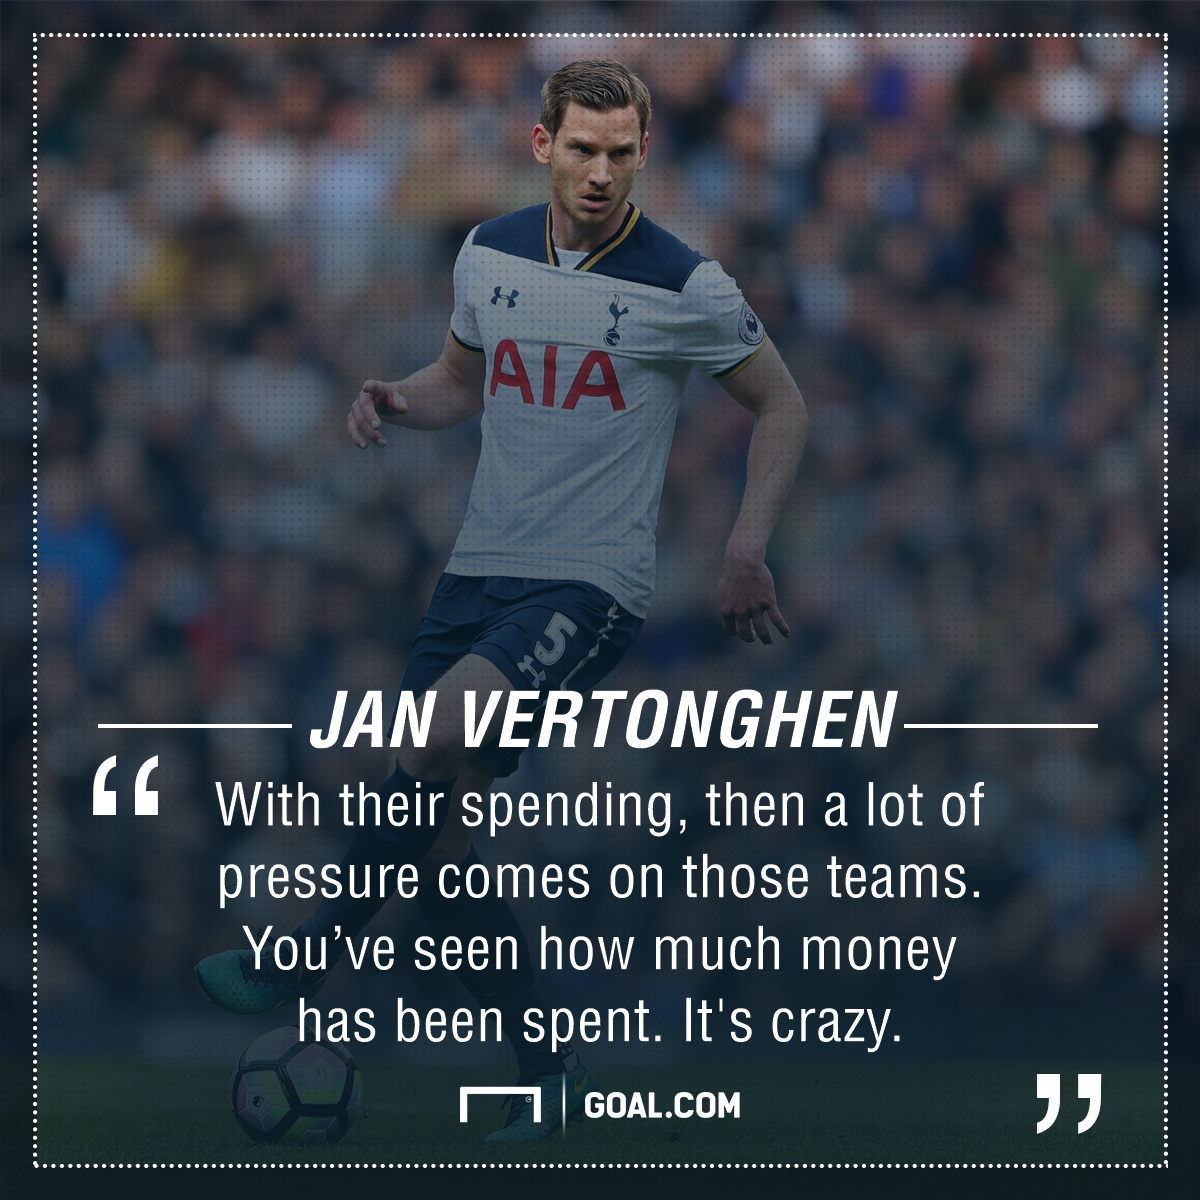 Jan Vertonghen Tottenham Premier League spending